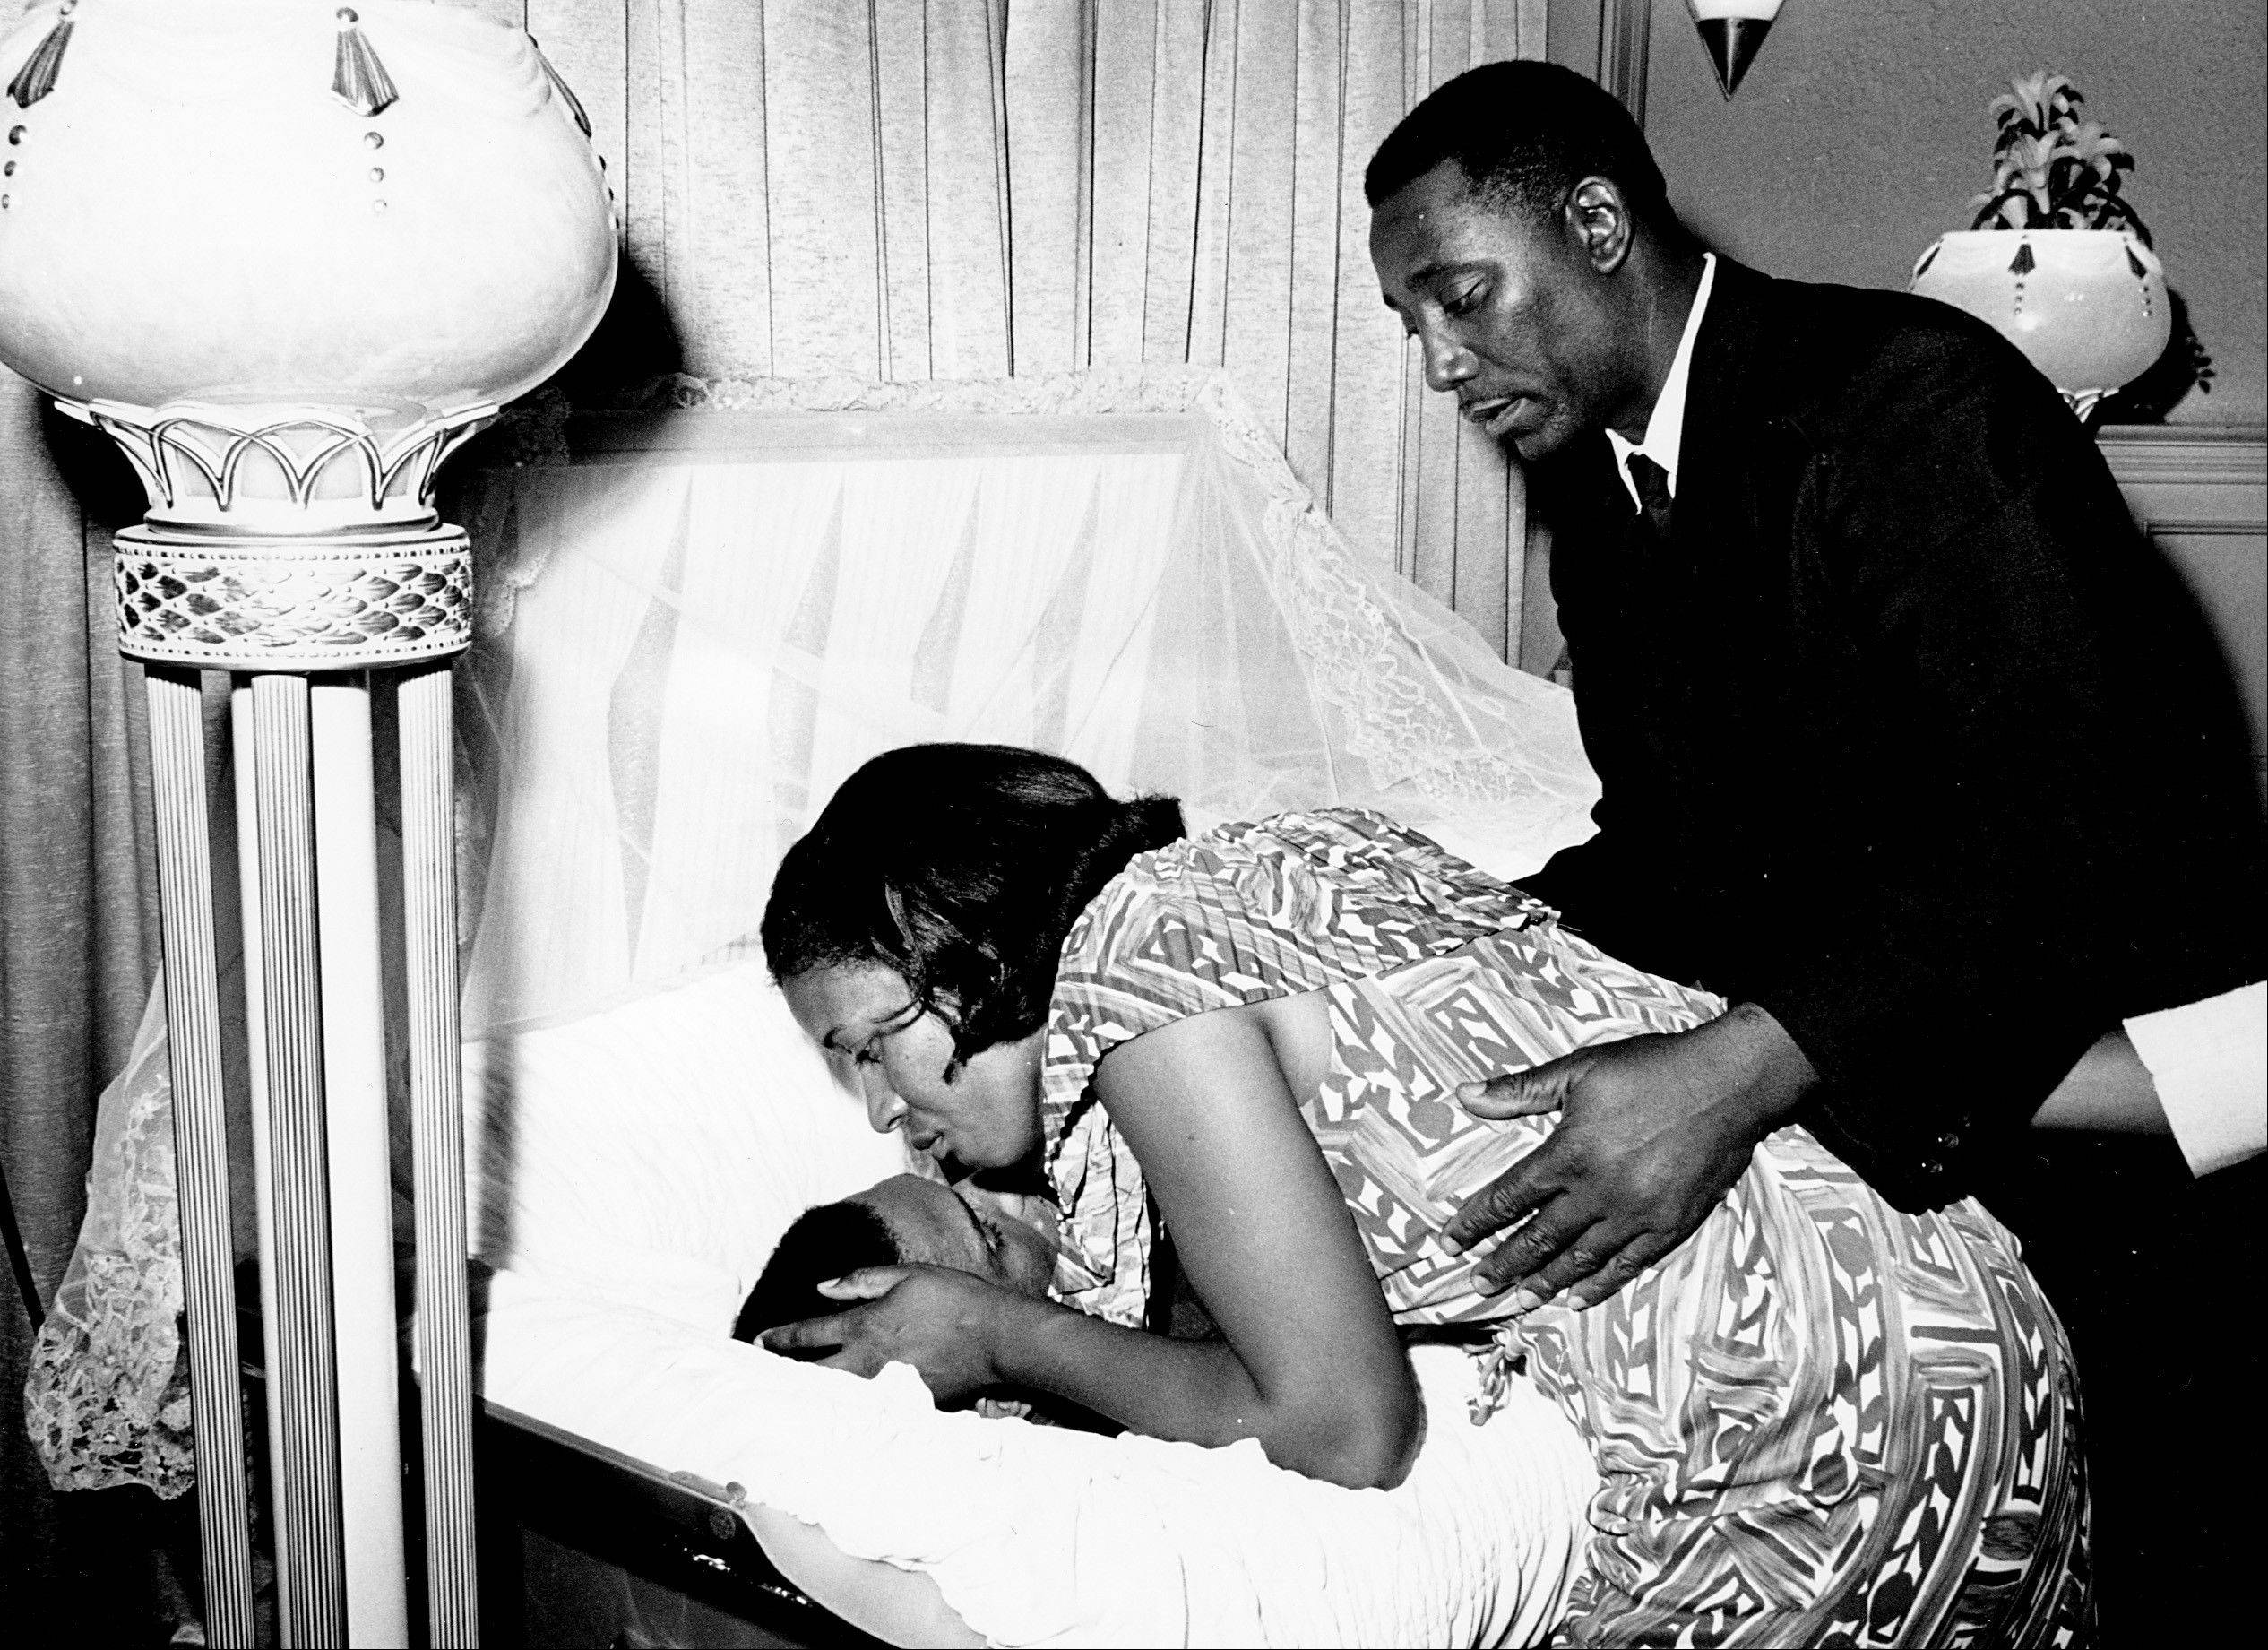 Myrlie Louise Evers, widow of civil rights activist Medgar Evers, leans down to kiss her late husband's forehead before the casket was opened for public viewing at a funeral home in Jackson, Miss. Evers, who was the first Mississippi field director of NAACP, 1954-1963, was 37 when he was assassinated outside the family's north Jackson home on June 12, 1963.